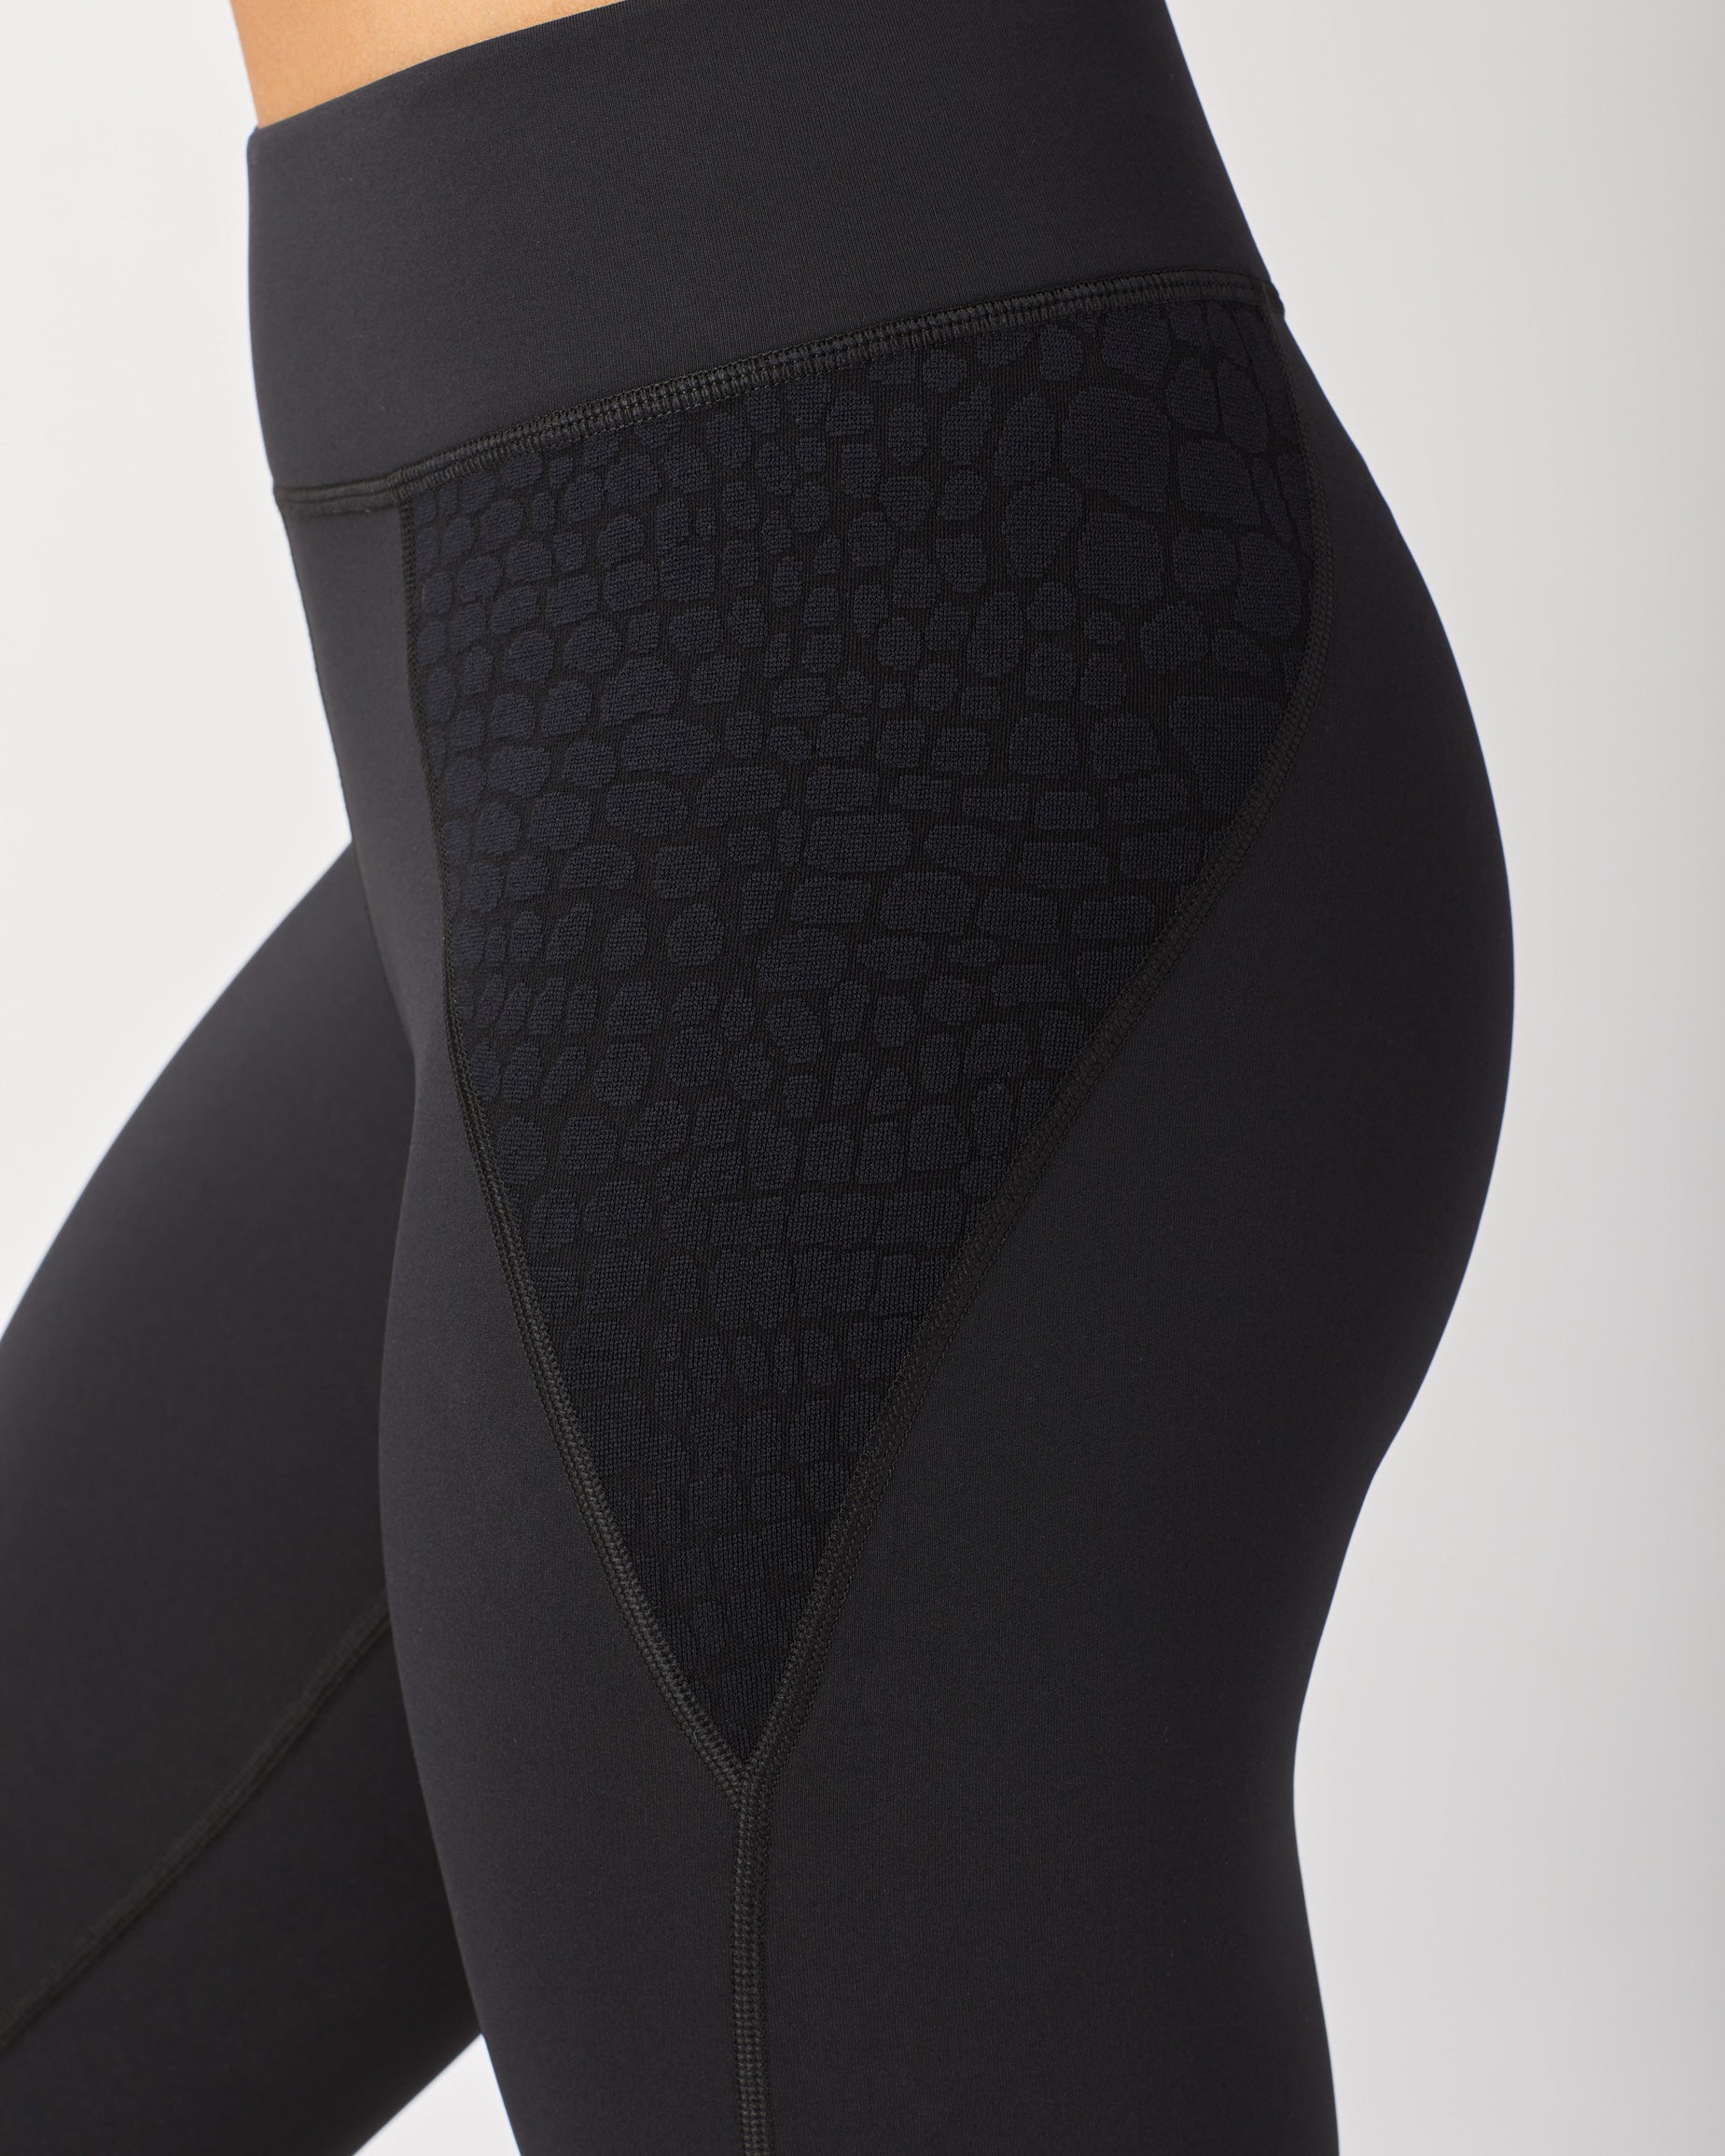 shadow-legging-black-croc